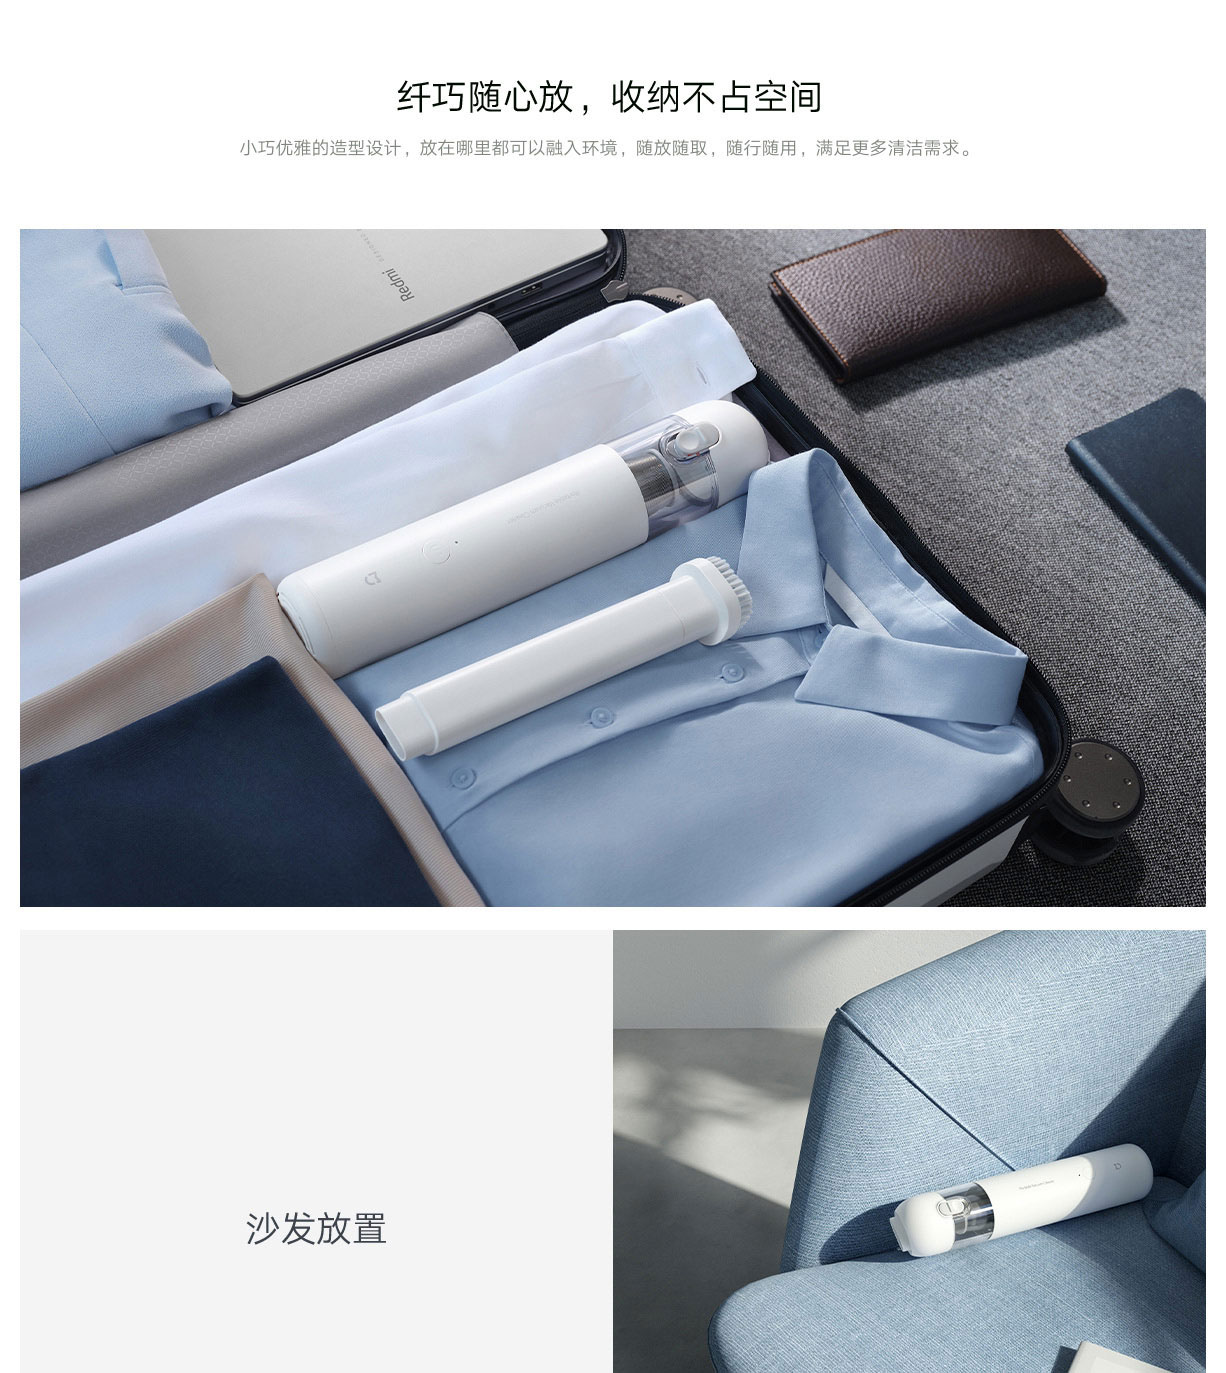 product_奇妙_米家随手吸尘器